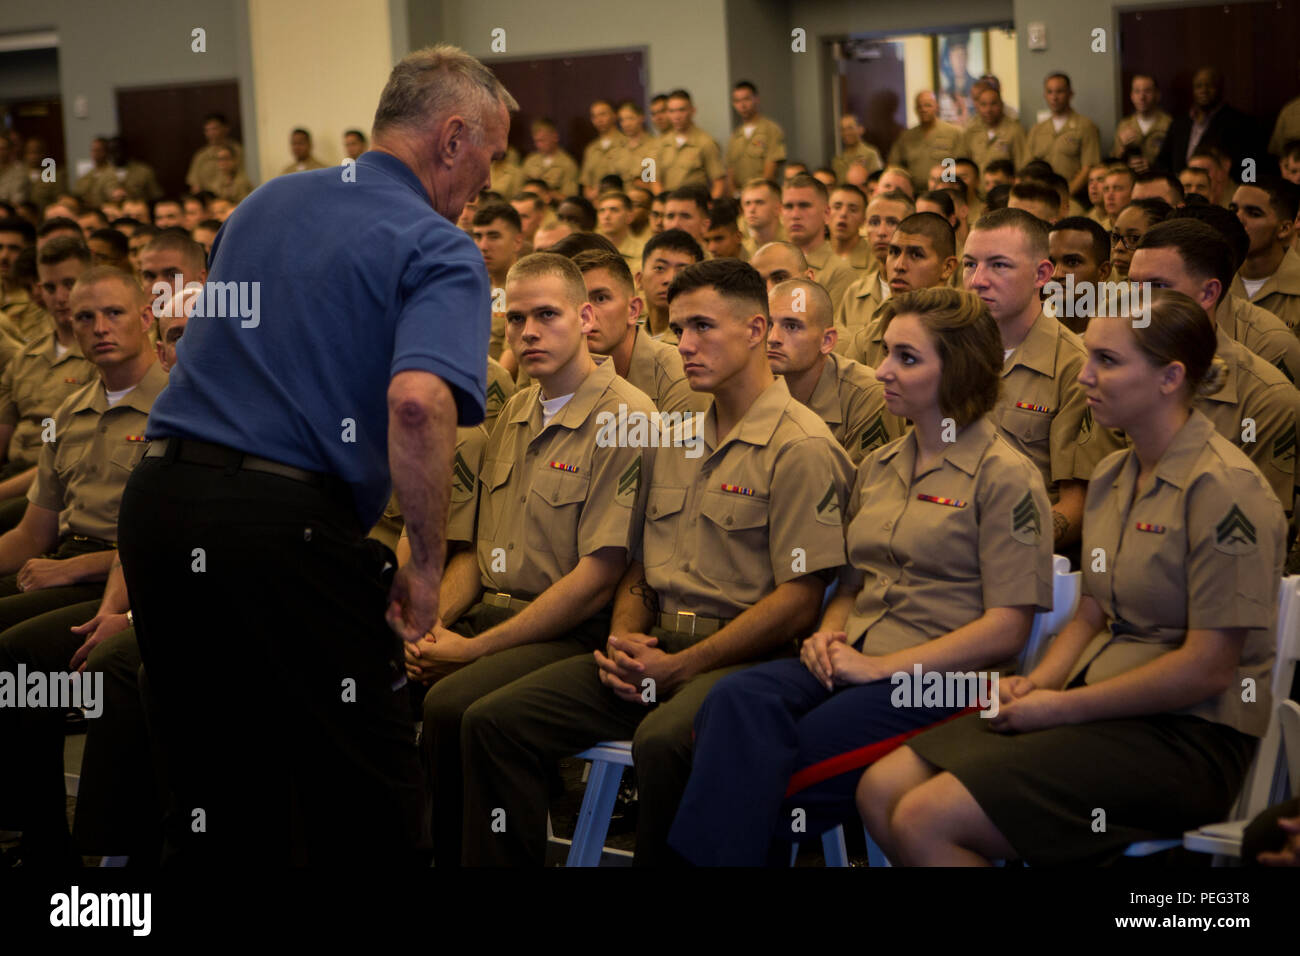 Retired U.S. Marine Corps Lt. Col. Jake Matthews, guest speaker, delivers a speech to Marines of 2nd Marine Aircraft Wing and Marine Corps Air Station (MCAS) Cherry Point during a 2nd Marine Expeditionary Force, Force Preservation Campaign, 'Protect what you've earned' brief at MCAS Cherry Point, N.C., on Aug. 21, 2015. The purpose of the campaign is to promote and inculcate a culture of making responsible decision to help ensure our Marines and Sailors protect what they have earned as service members by avoiding destructive behavior that places them at great personal and professional risk. (U - Stock Image